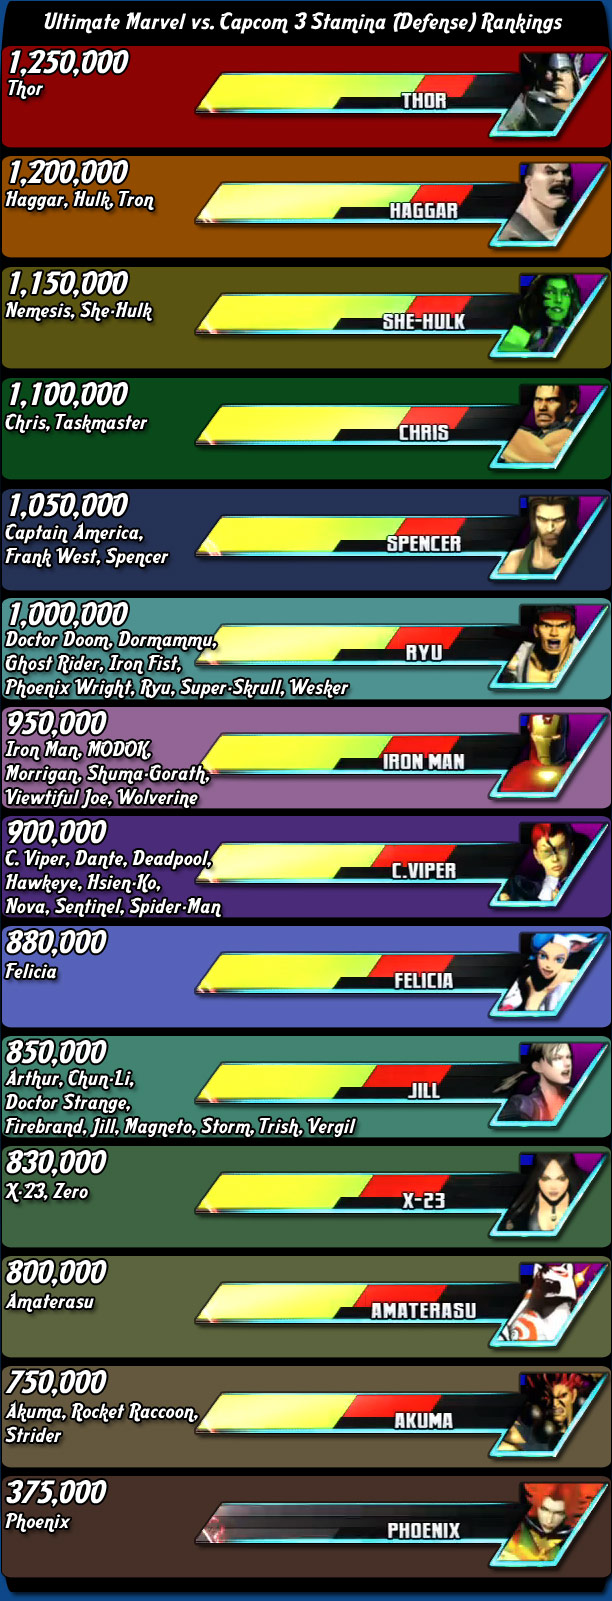 Stamina (Health) rankings for Ultimate Marvel vs. Capcom 3